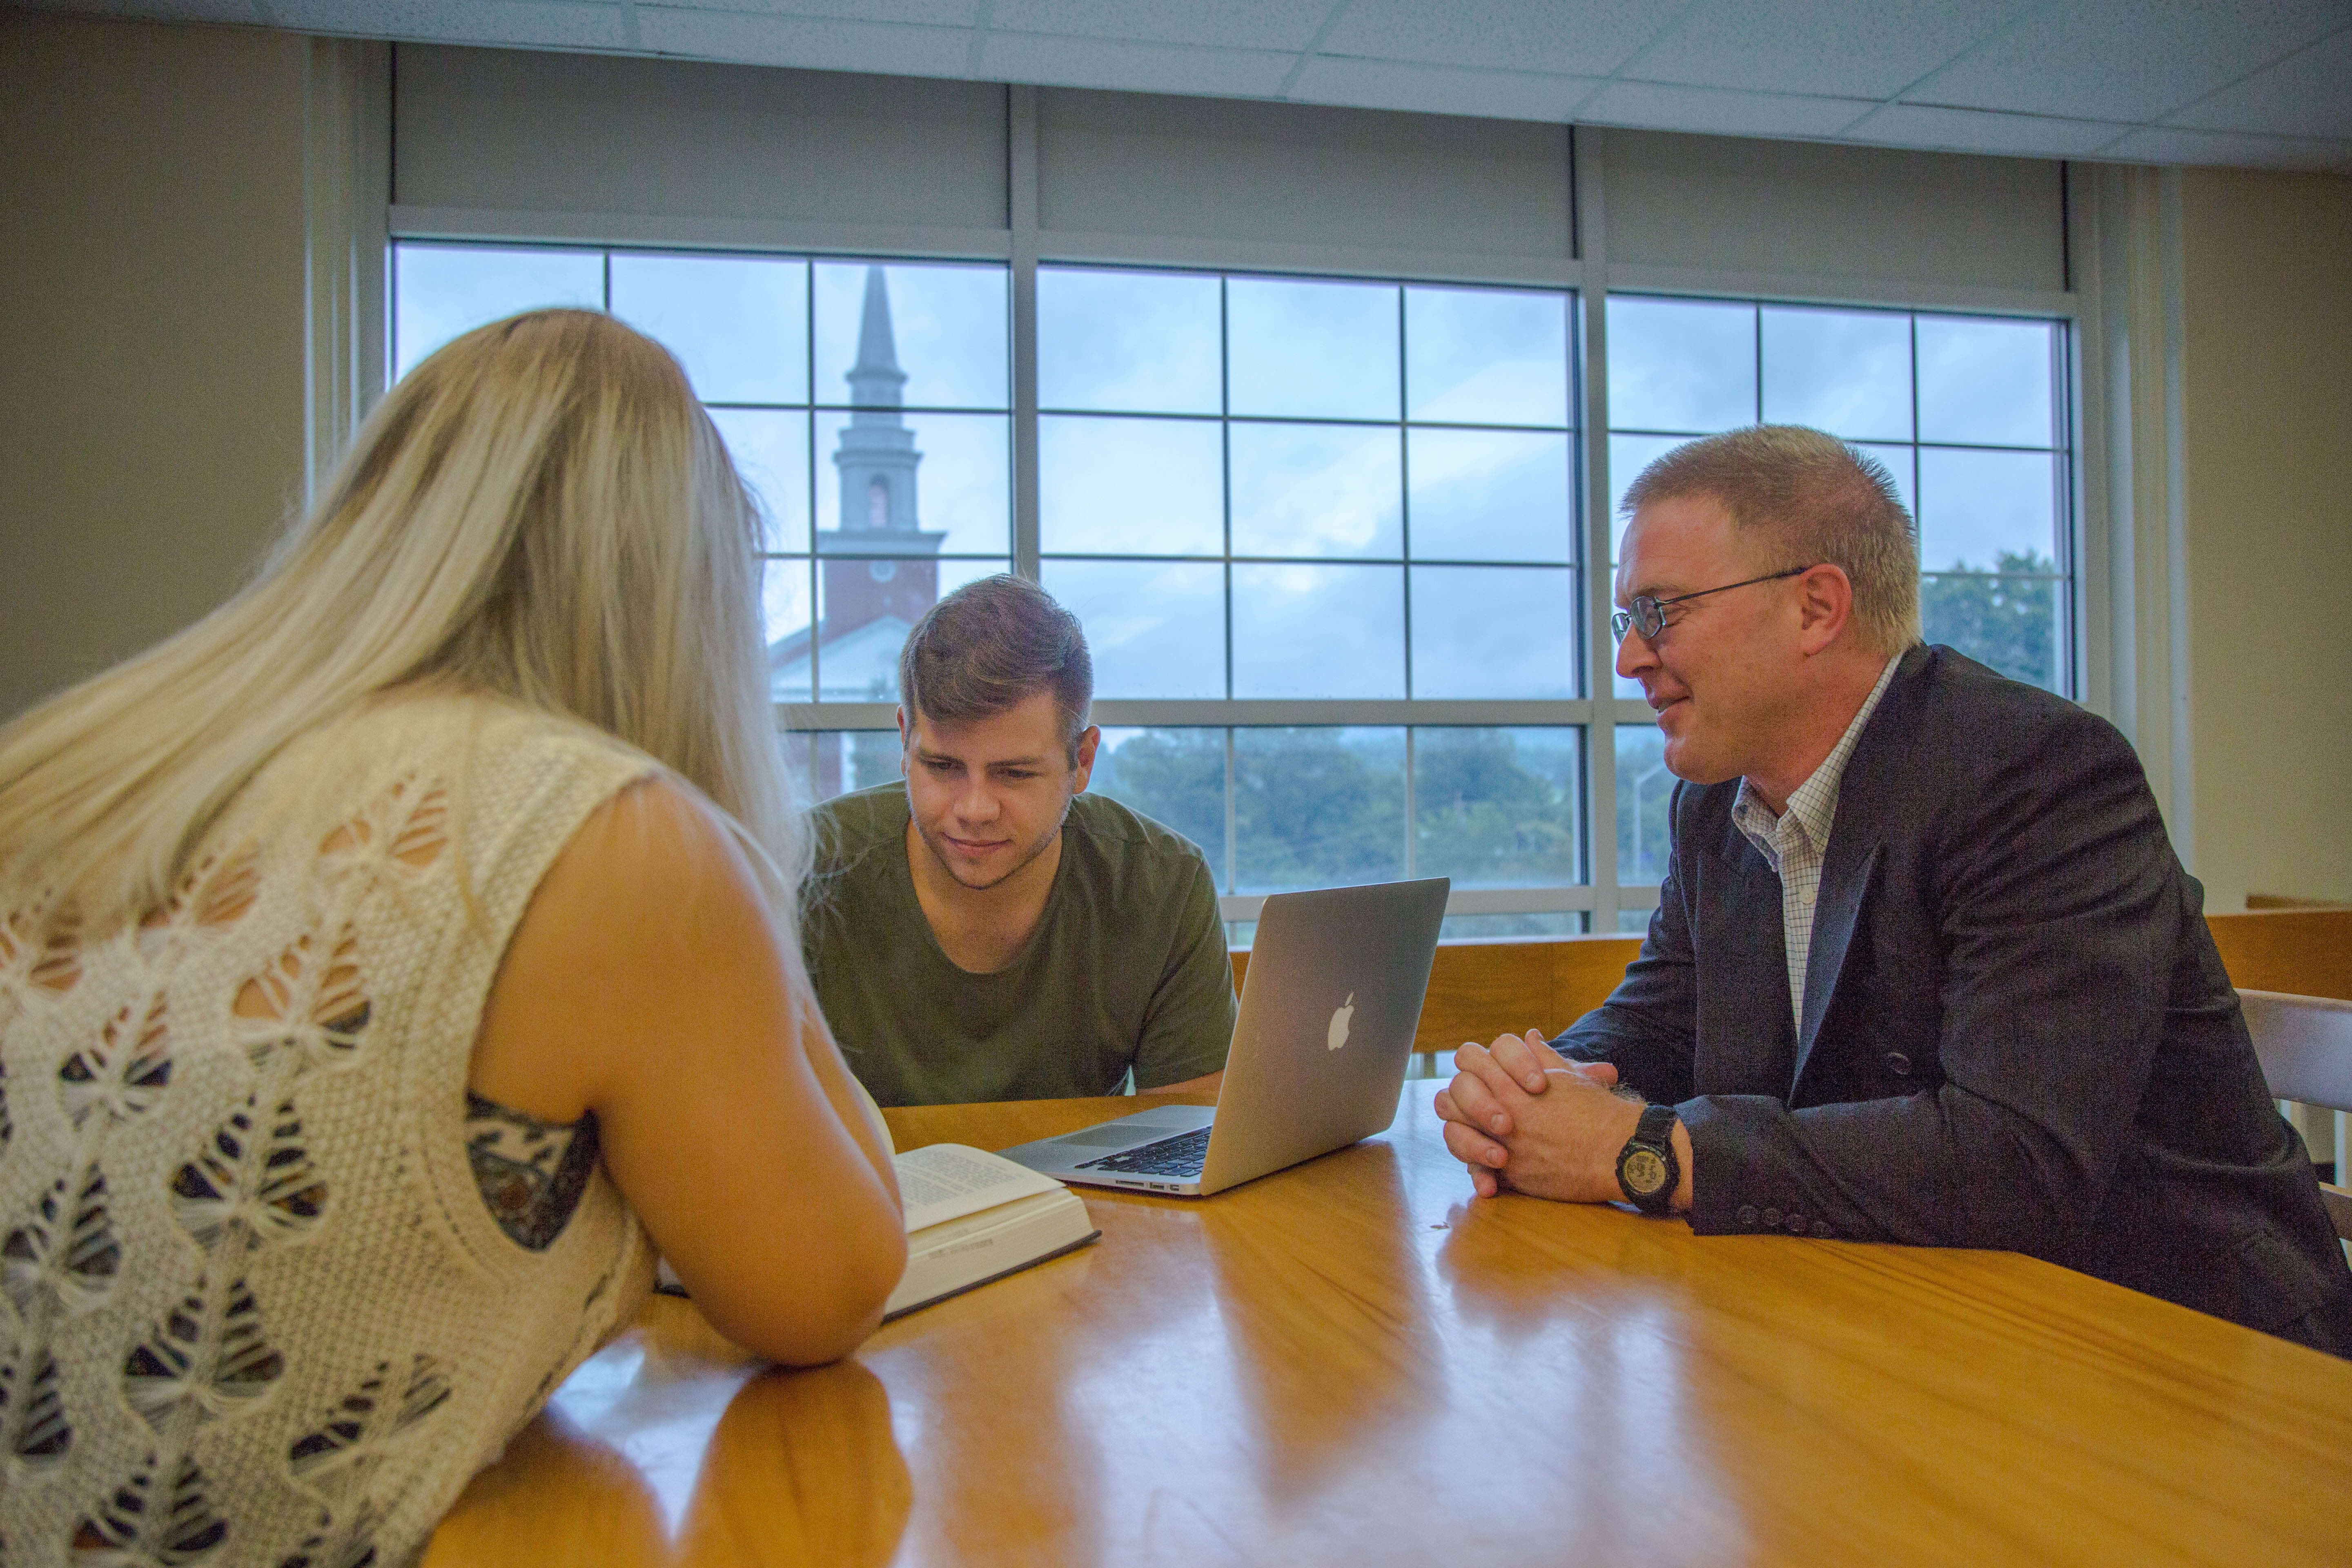 US liberal arts colleges where community comes first